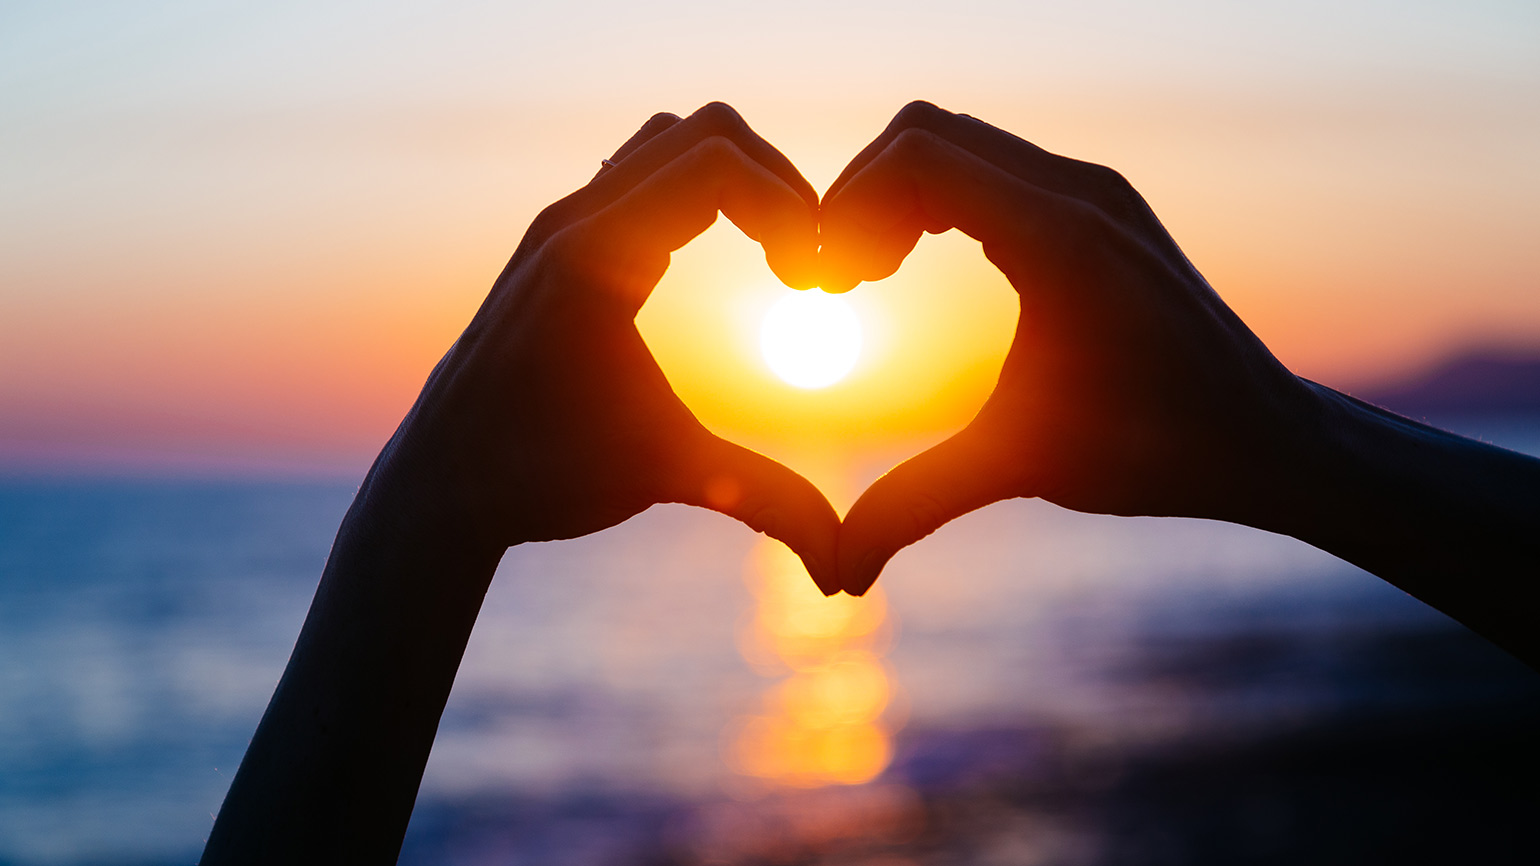 A pair of hands form a heart with a sunset in the background